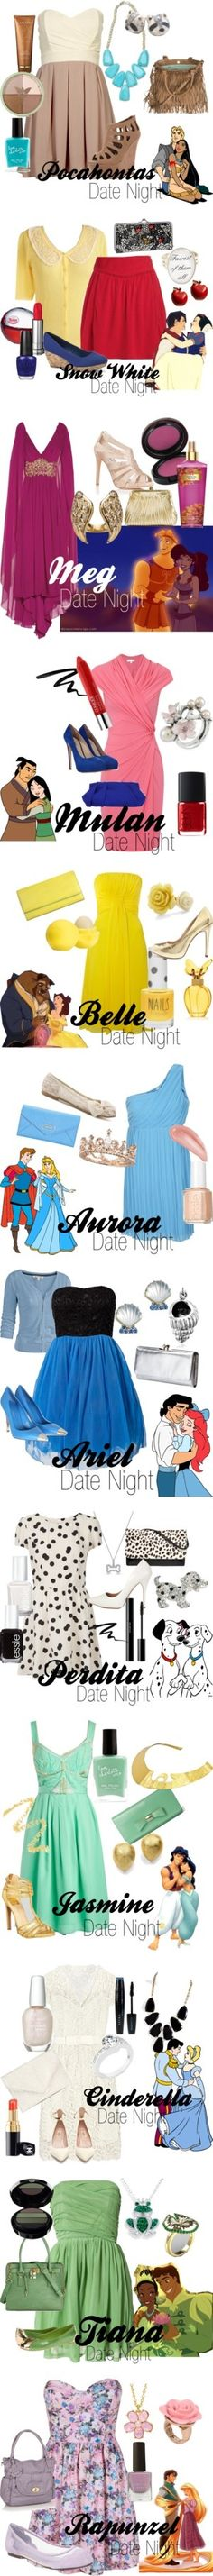 """""""Disney Date Night"""" by amarie104 on Polyvore"""